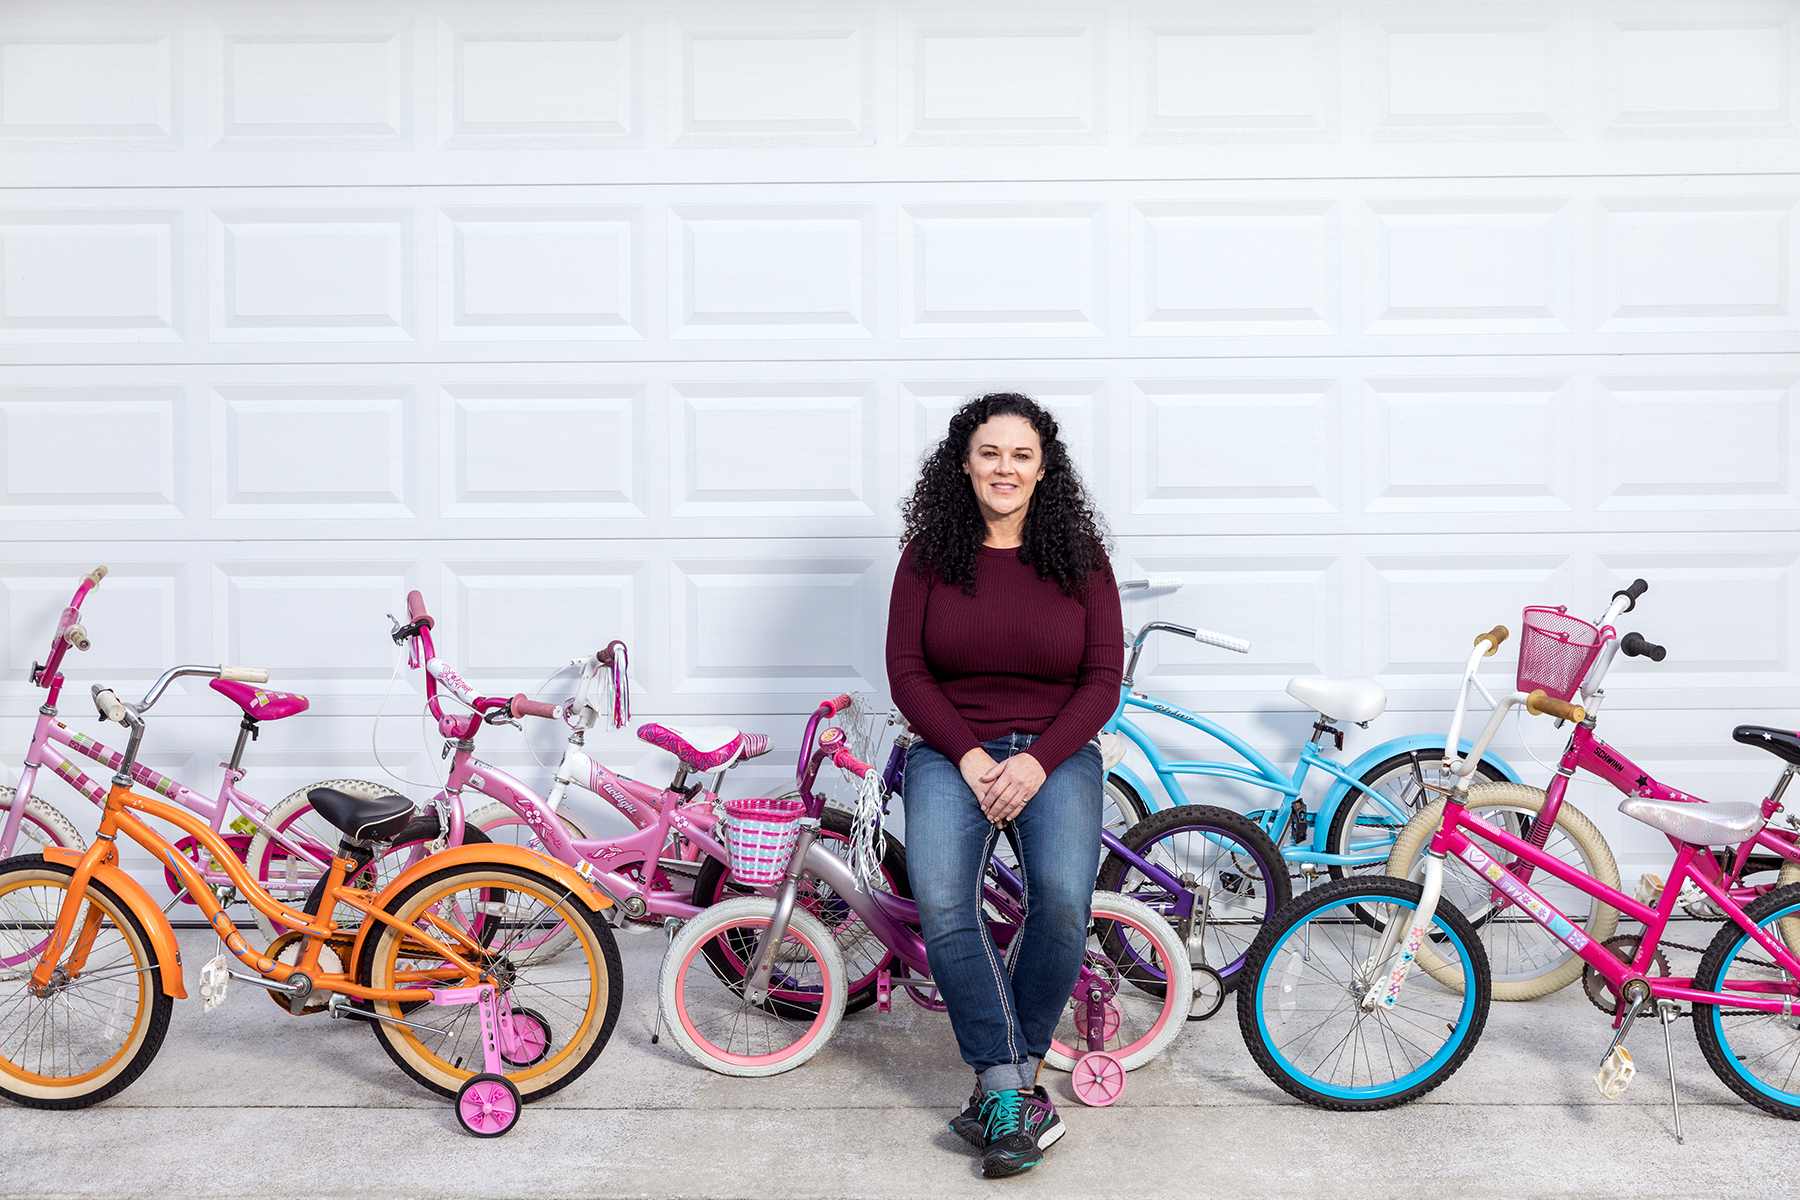 Kathy Downs Requested a Spare Kid's Bike on Social Media—and Ultimately Helped 1,500 Children in Need